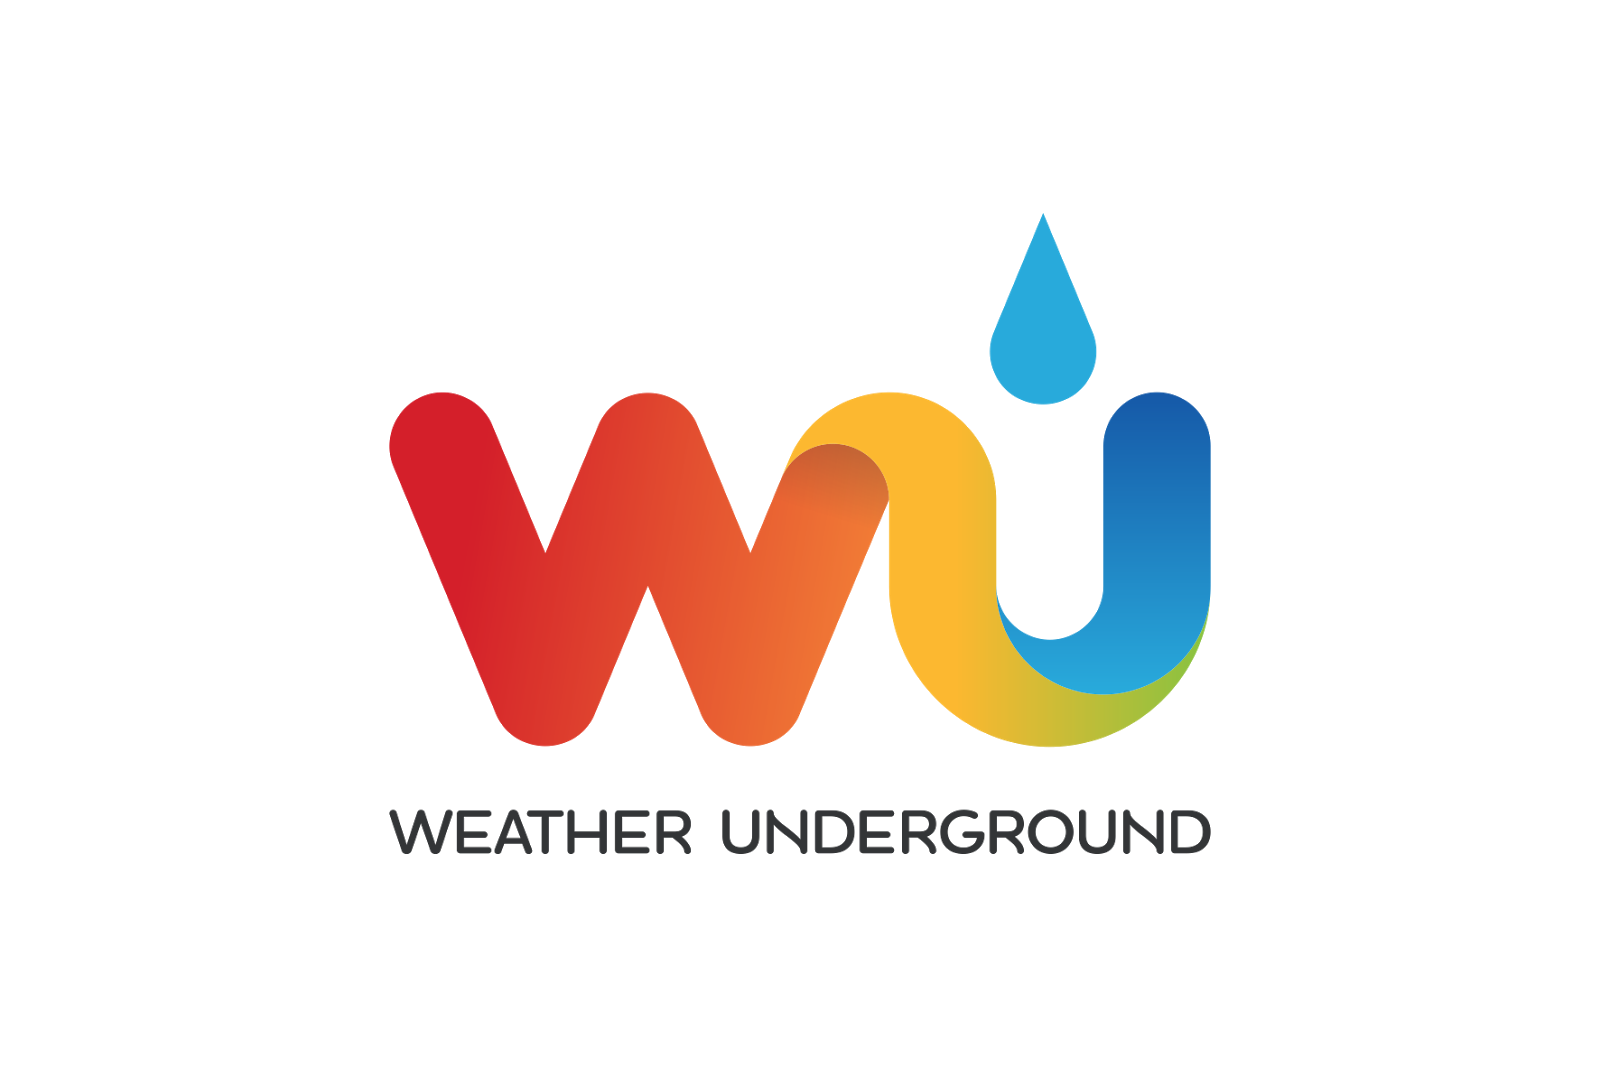 https://www.wunderground.com